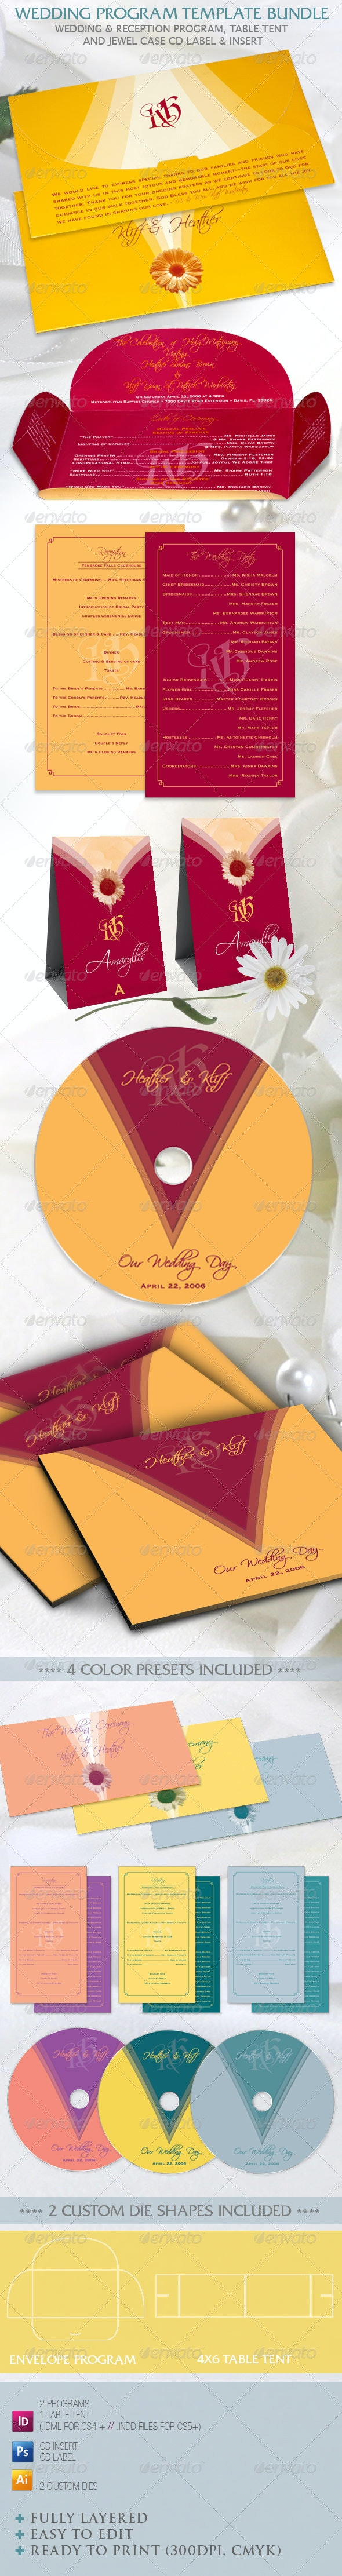 Wedding Program Template Bundle - Weddings Cards & Invites